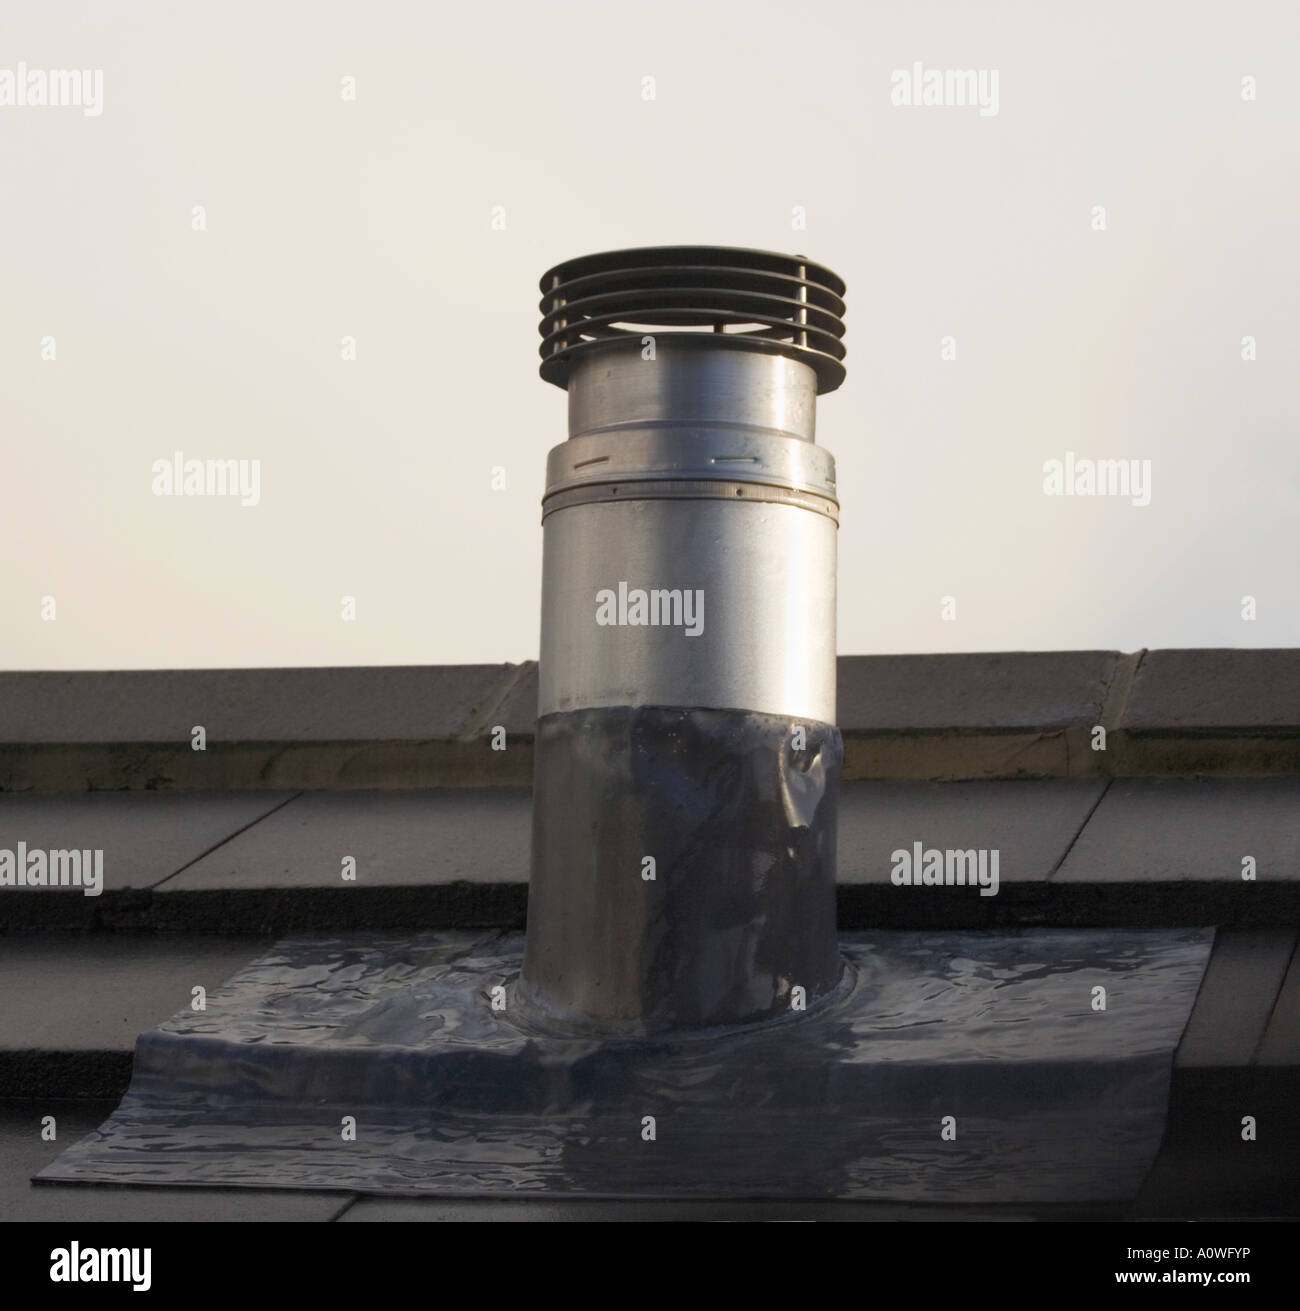 Roof Flue & The Flue Pipe Is Only 2.5